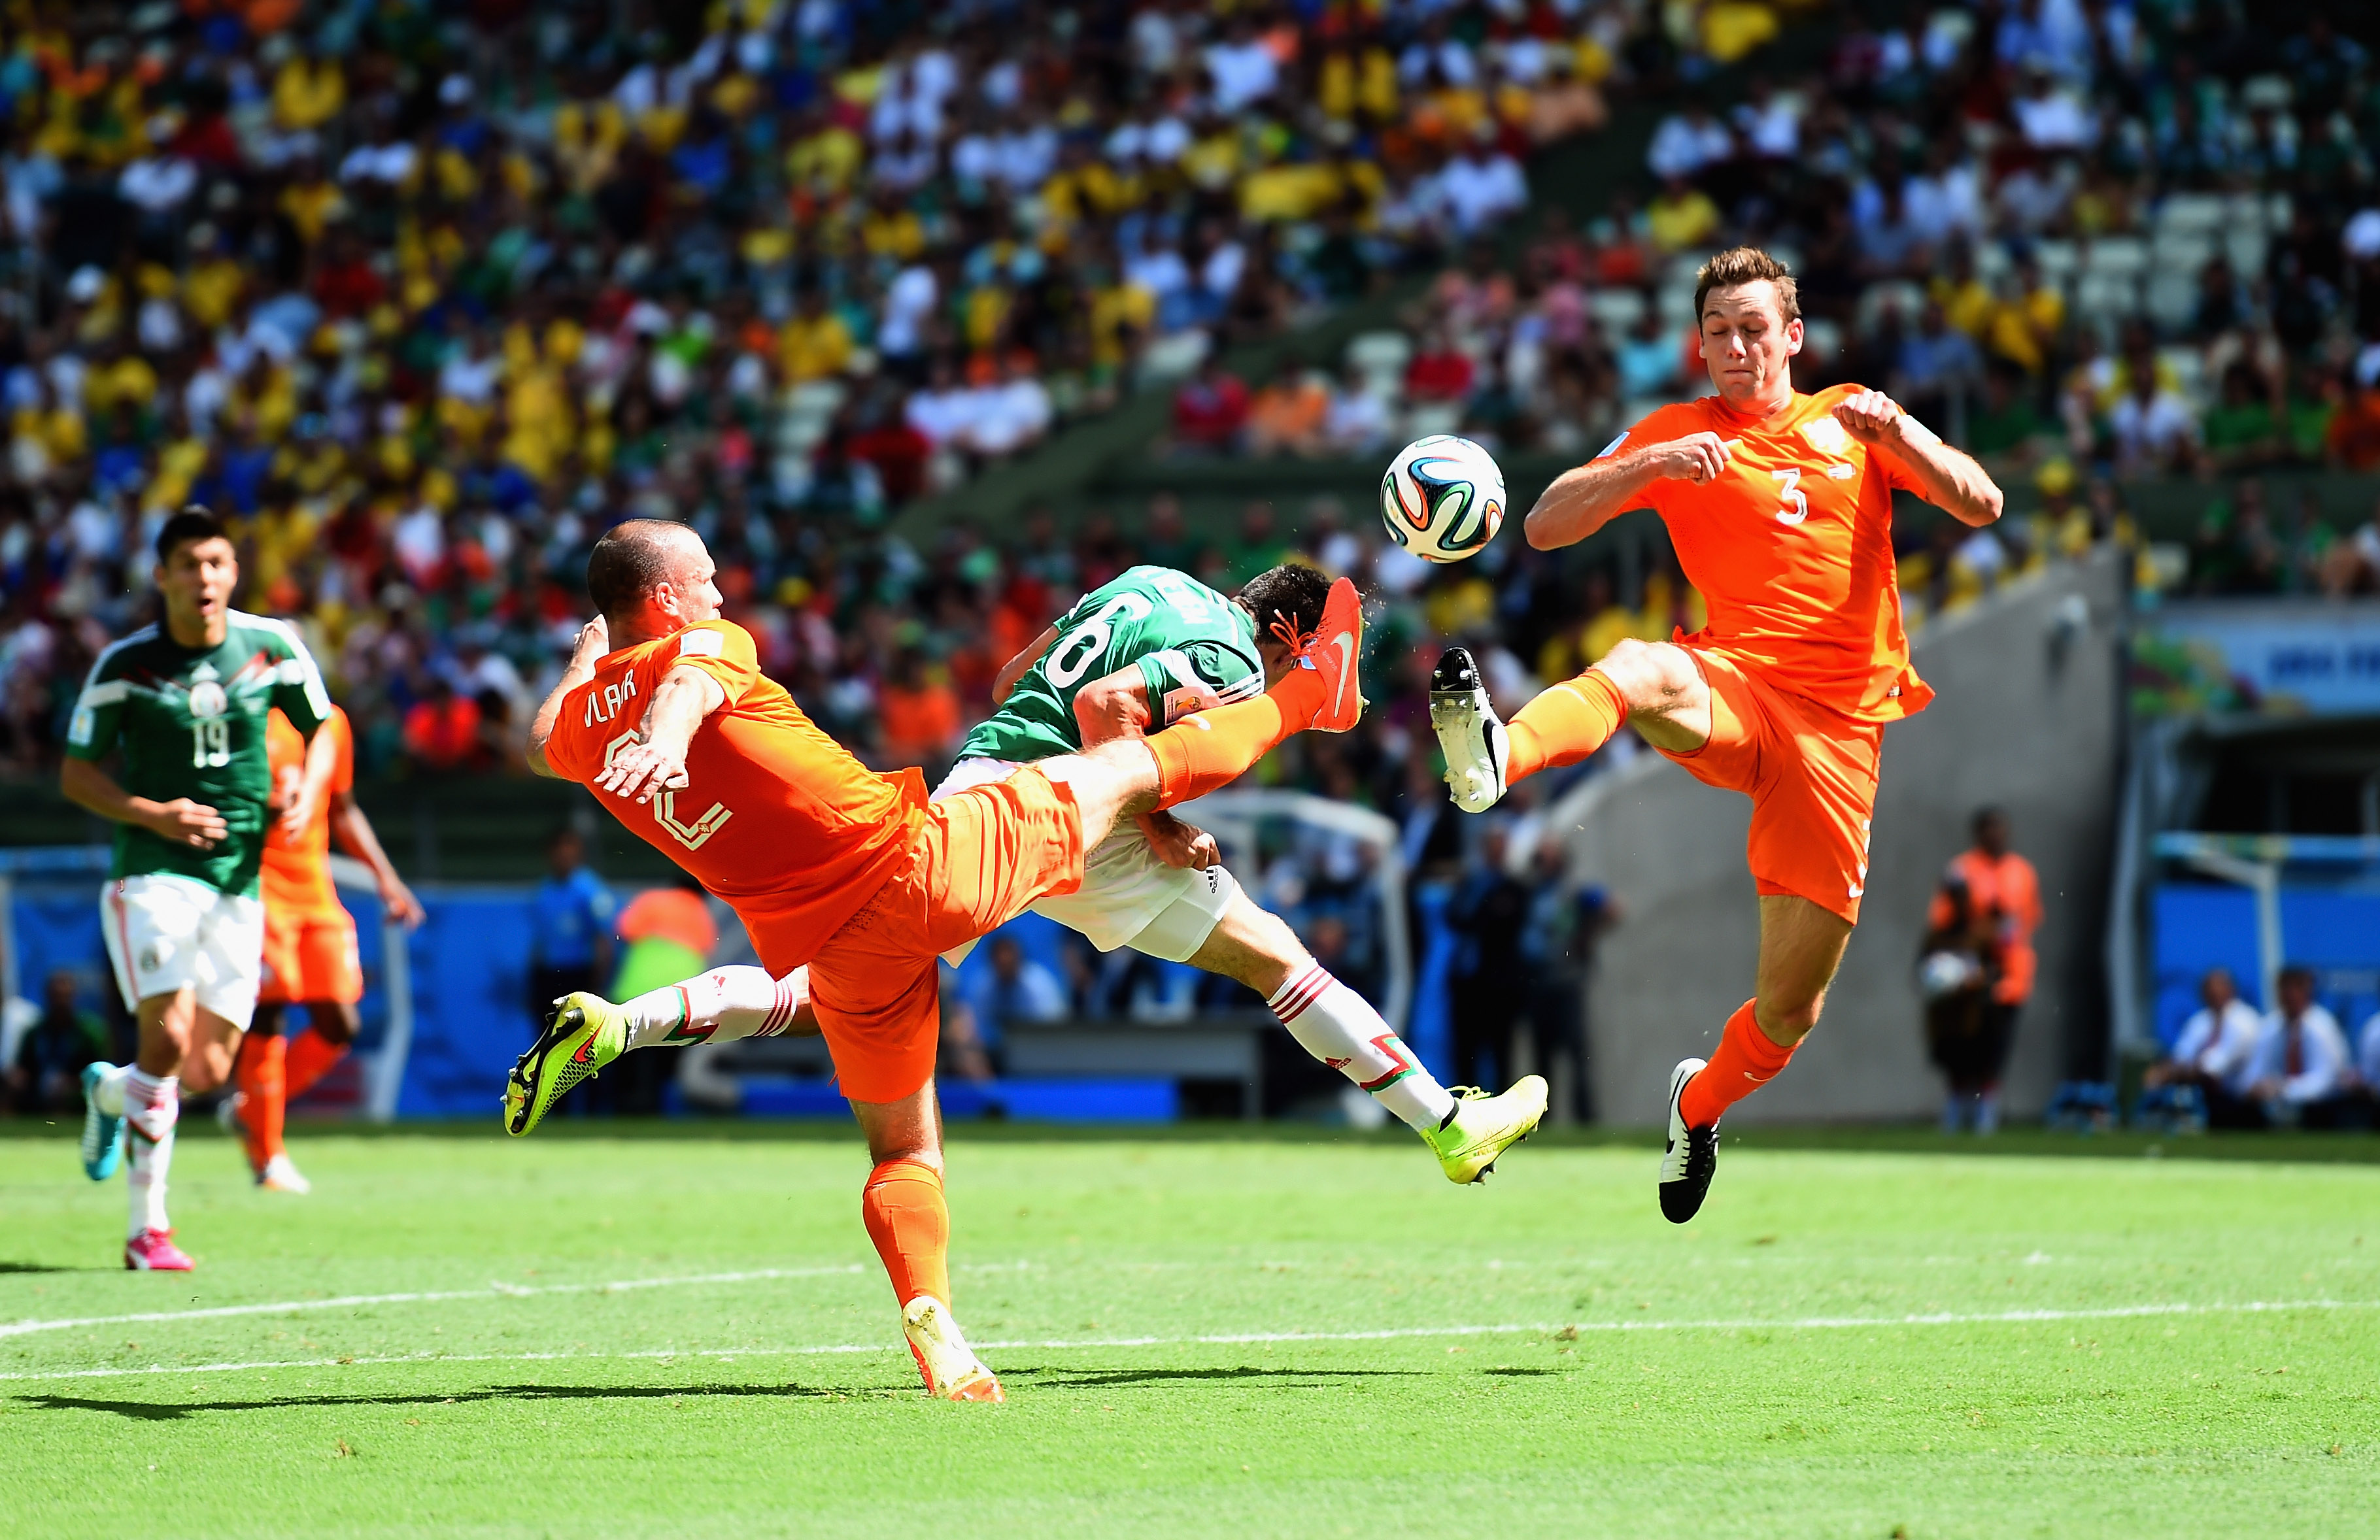 Ron Vlaar and Stefan De Vrij of Netherlands battles with Hector Herrera of Mexico during the 2014 FIFA World Cup on June 29 in Fortaleza, Brazil.